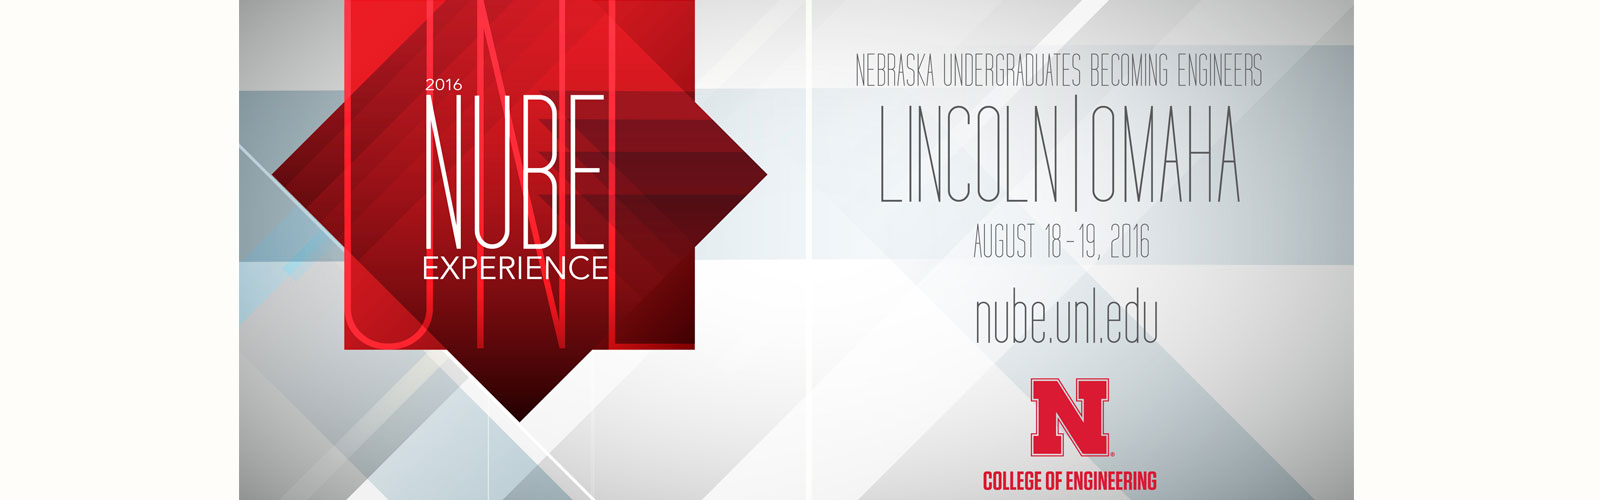 2016 NUBE Experience - Lincoln/Omaha - August 18-19